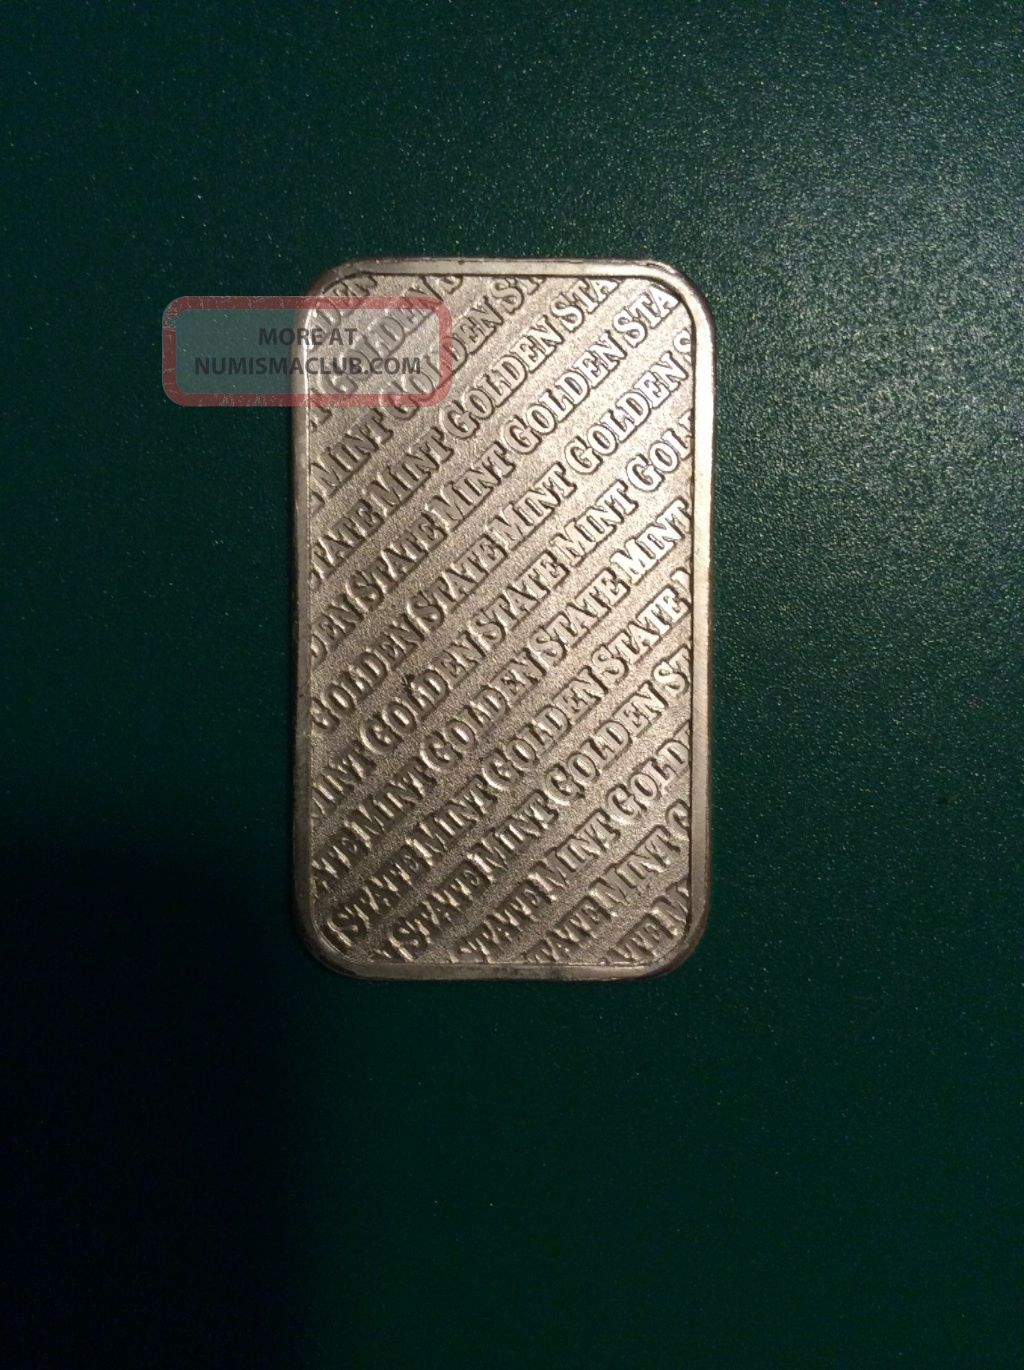 1 Troy Oz Golden State 999 Fine Silver Bar